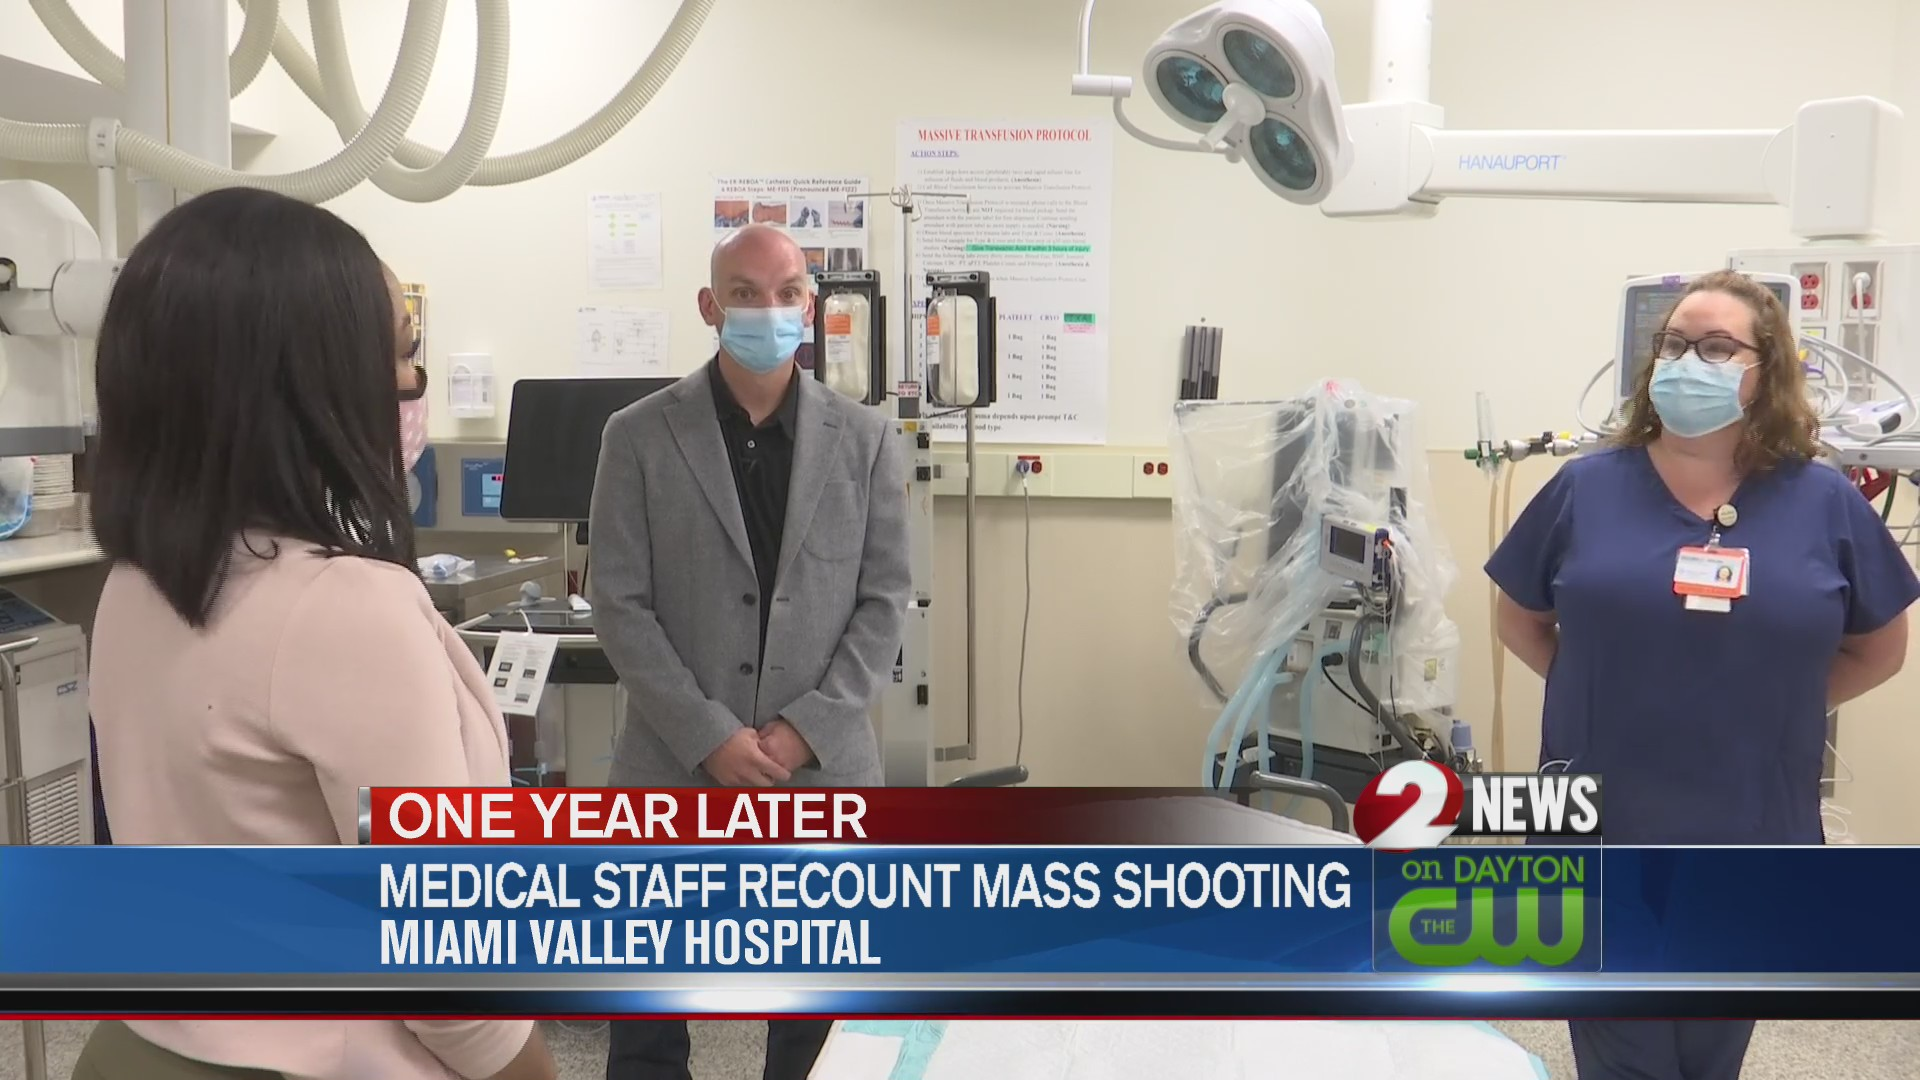 ER doctor, nurse recall feeling 'helpless' while attending to Oregon District shooting victims